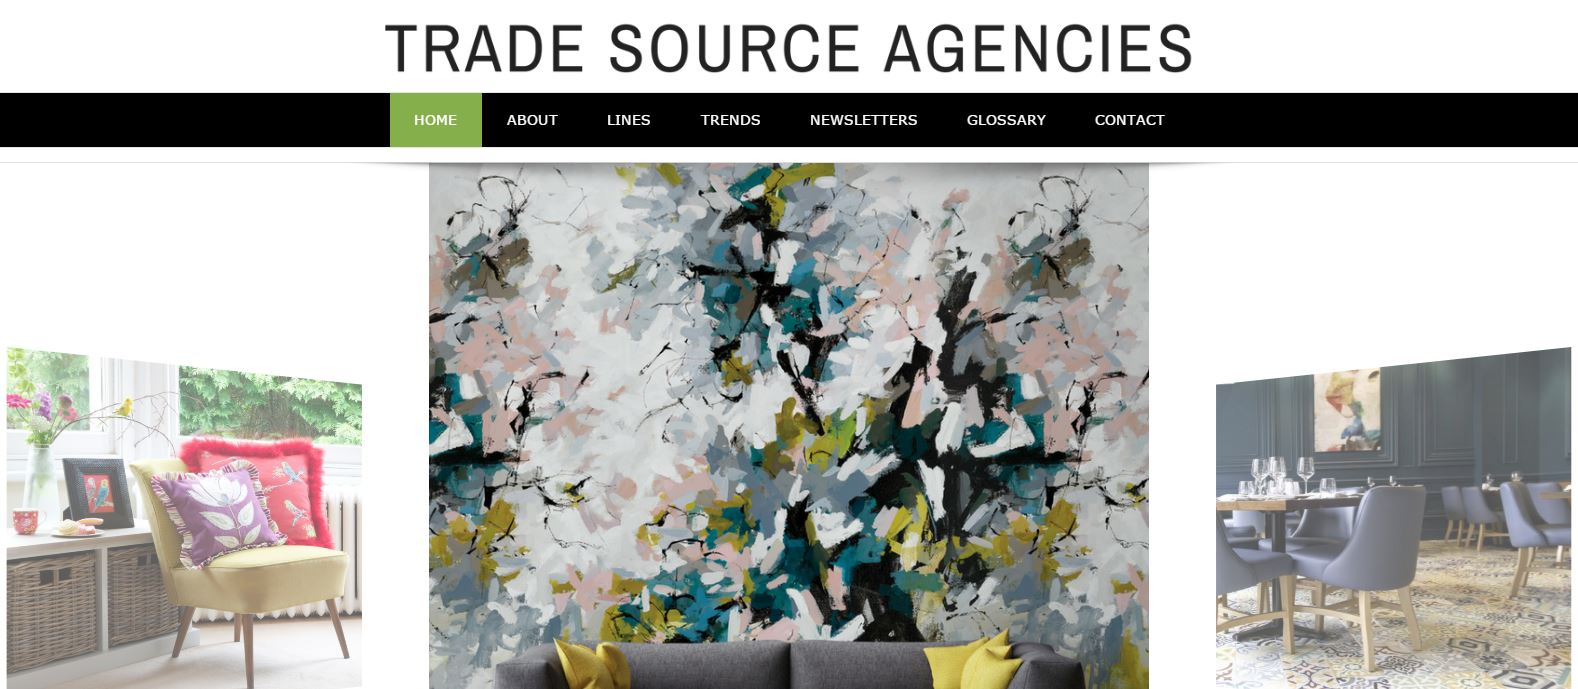 Trade Source Agencies